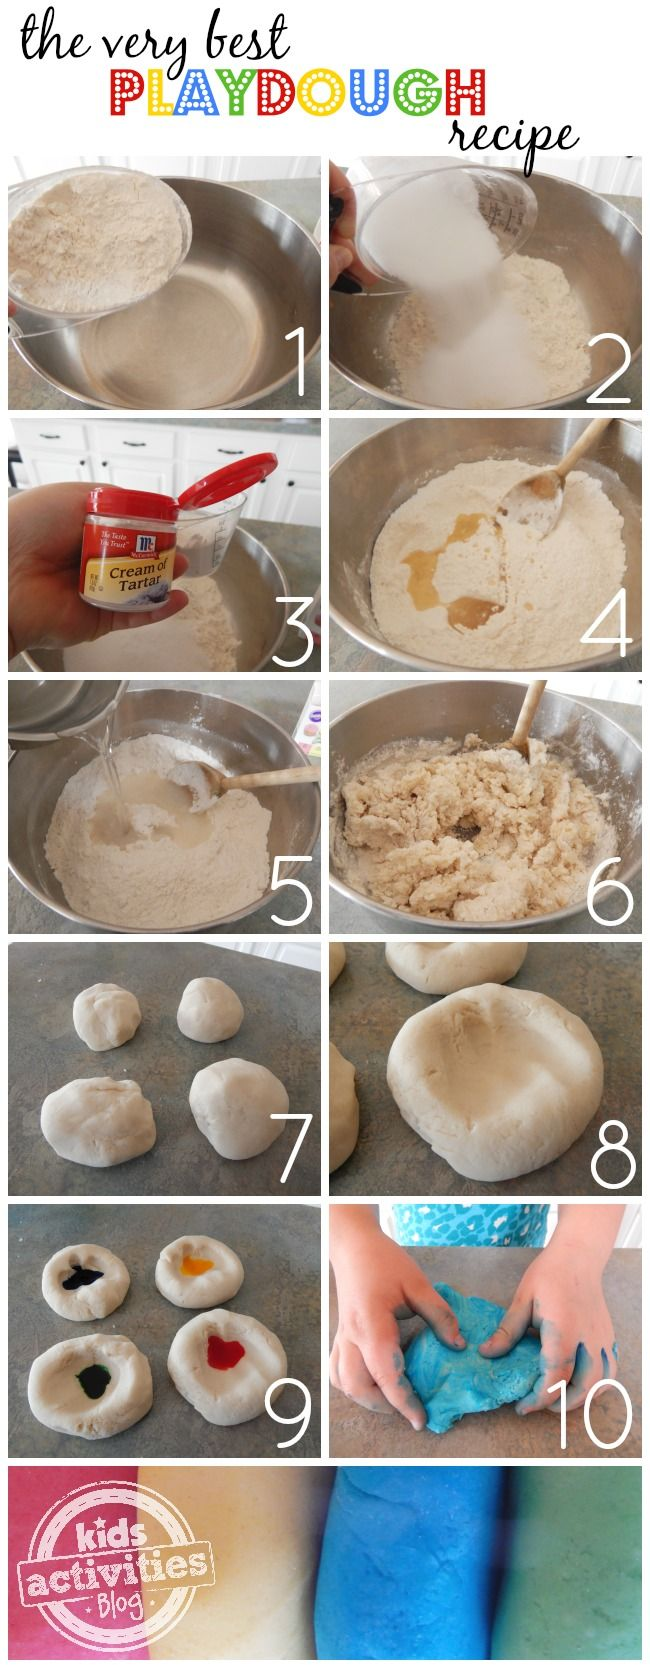 The very best play dough recipe. This will last forever, too!